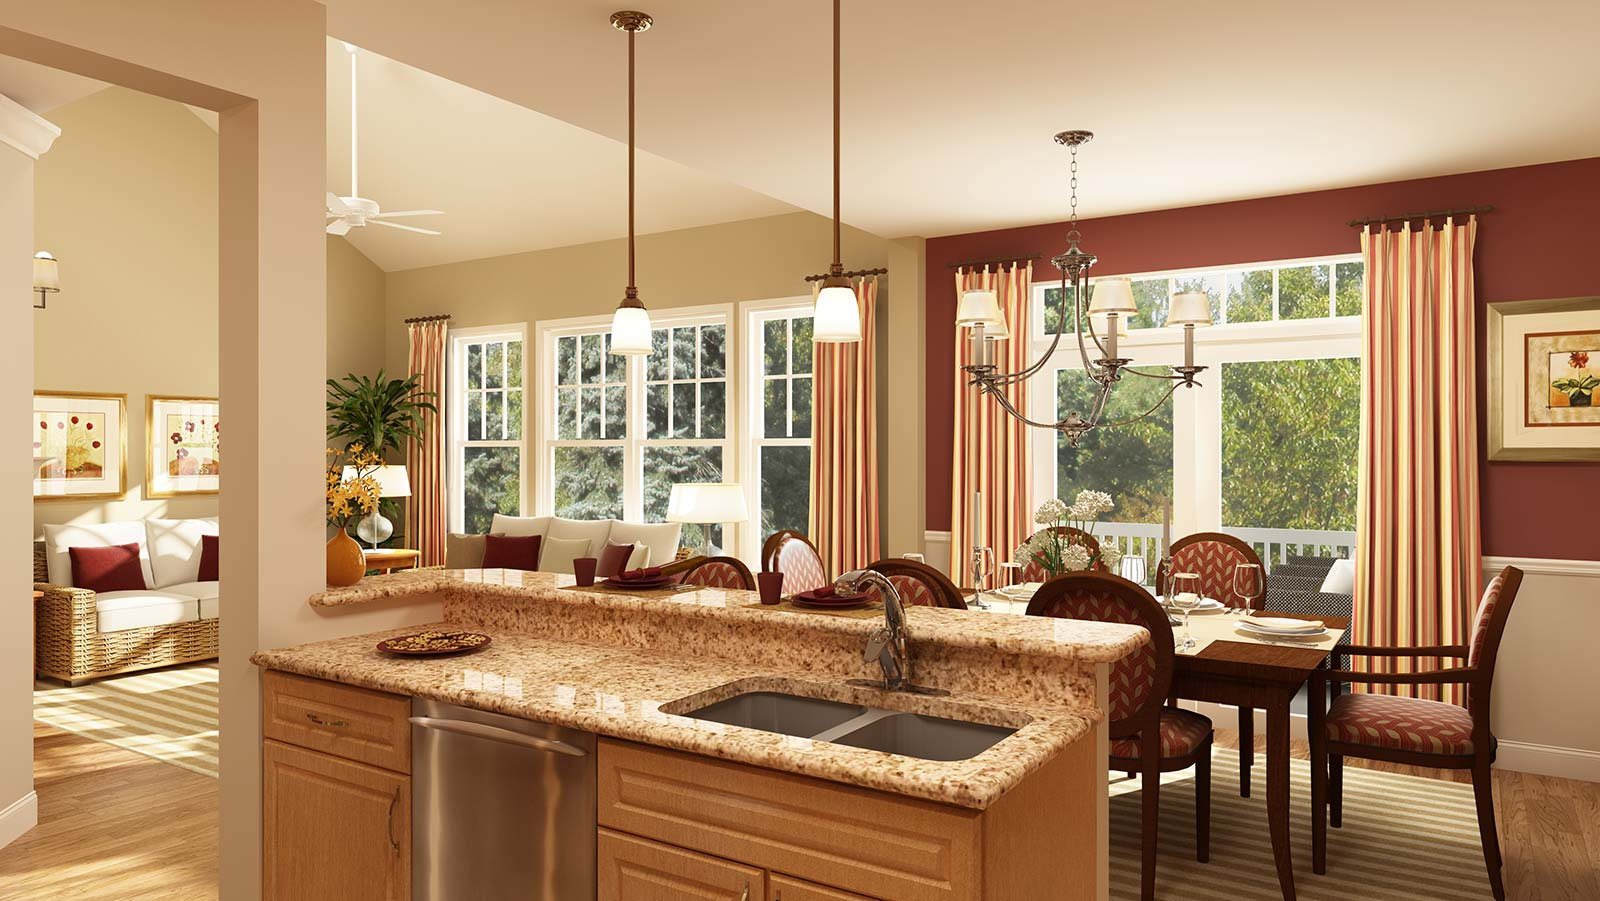 Perfect For Entertaining The Osterville Kitchen Overlooks Dining And Living Room Both Of